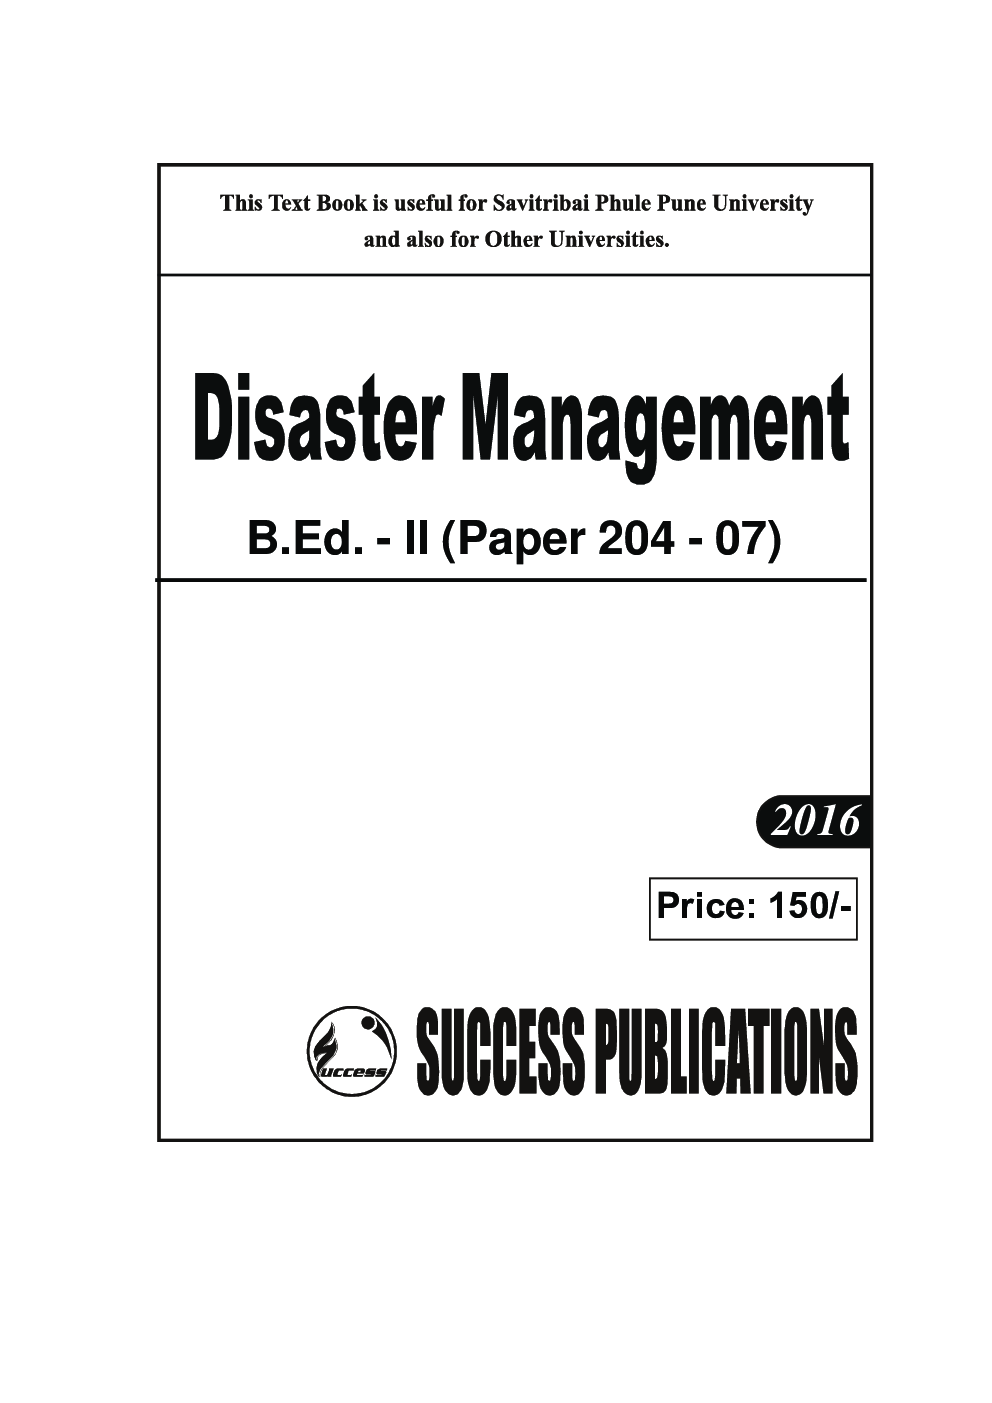 Disaster Management - Page 2